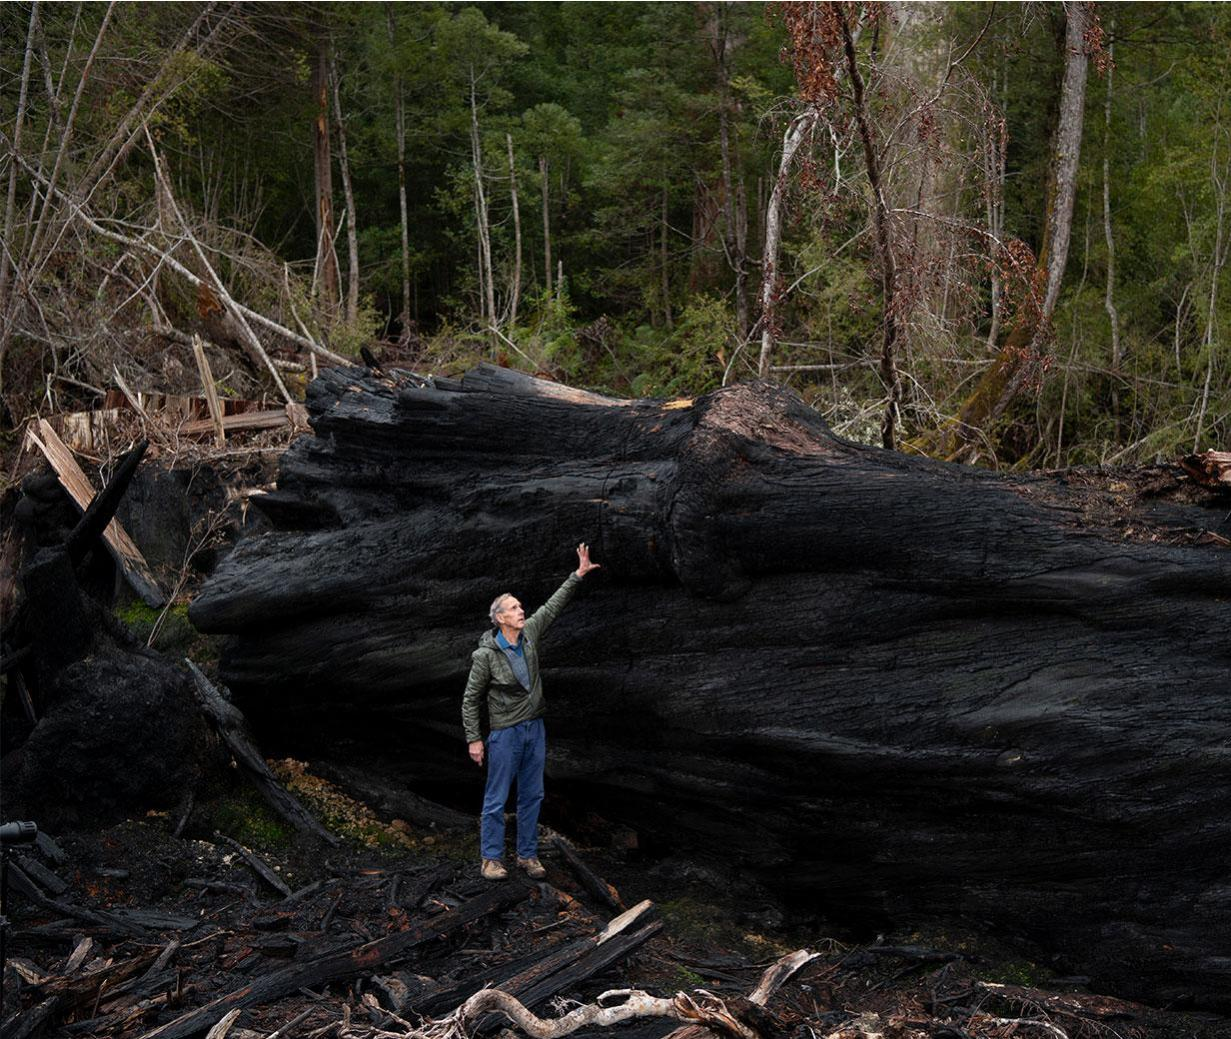 All I want for Christmas is some old growth forest